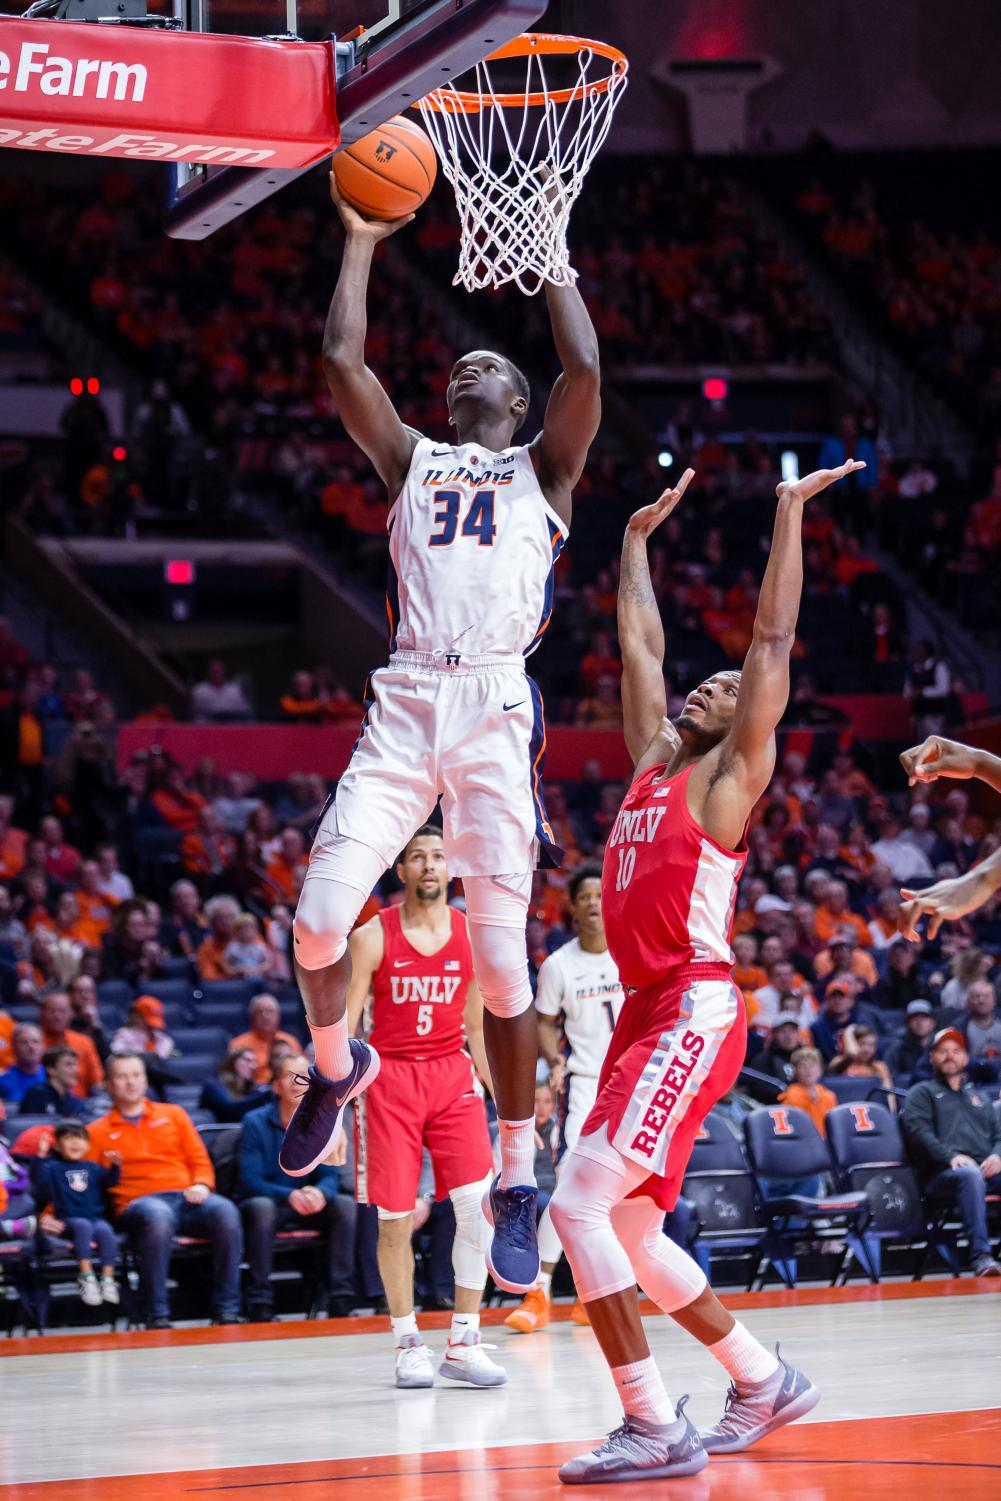 Illinois center Samba Kane goes up for a layup during the game against UNLV at the State Farm Center on Saturday. The Illini won 77-74.